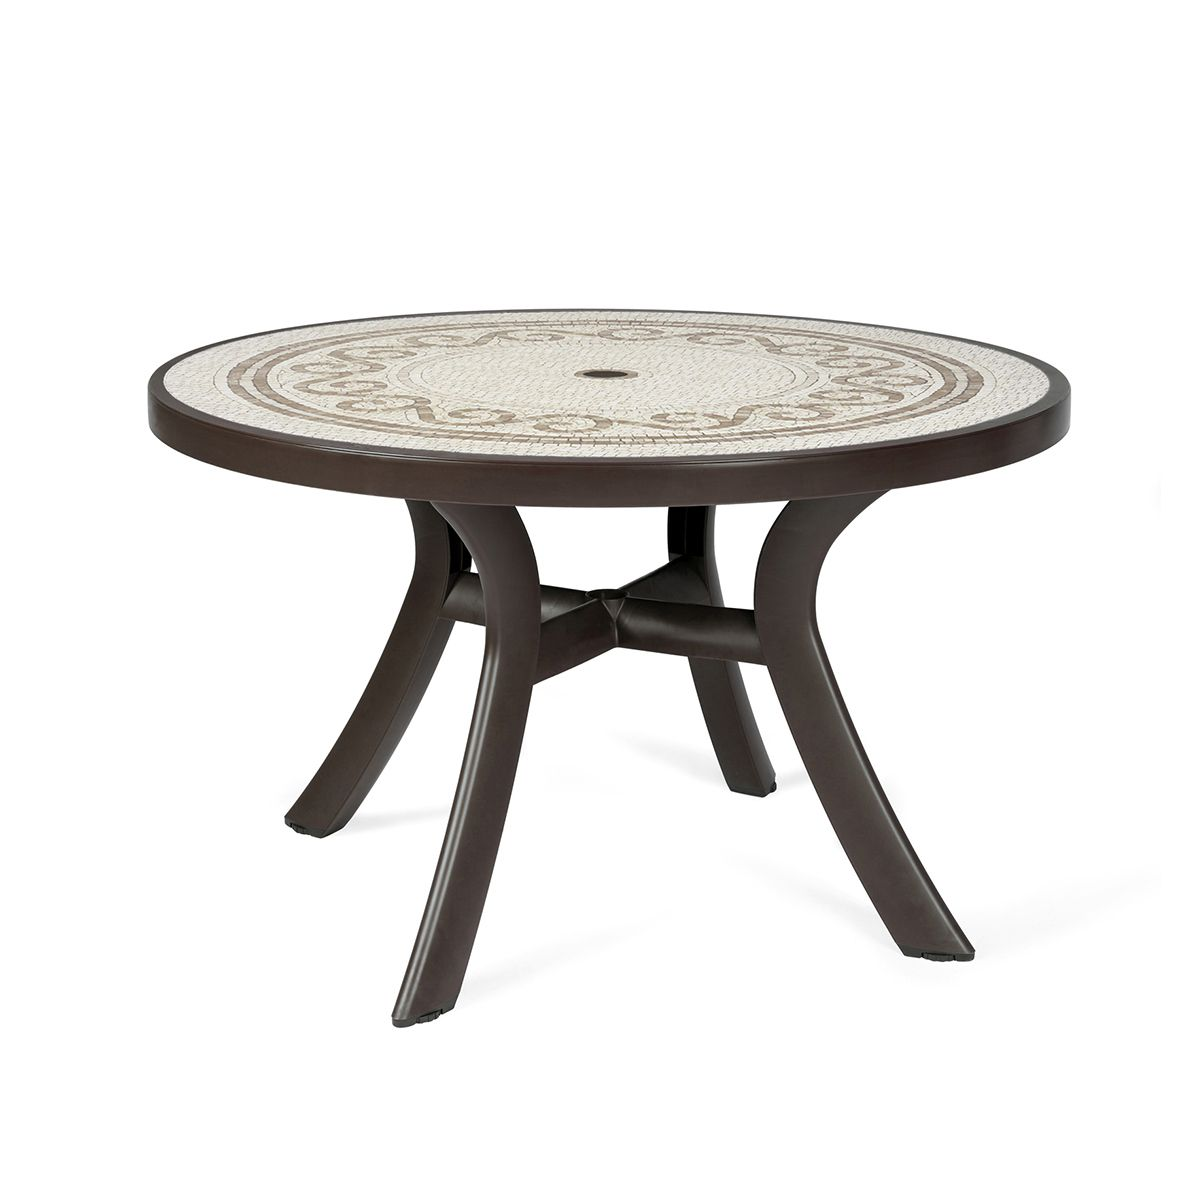 Table d montable nardi toscana 120 tables manger design for Meuble de jardin nardi